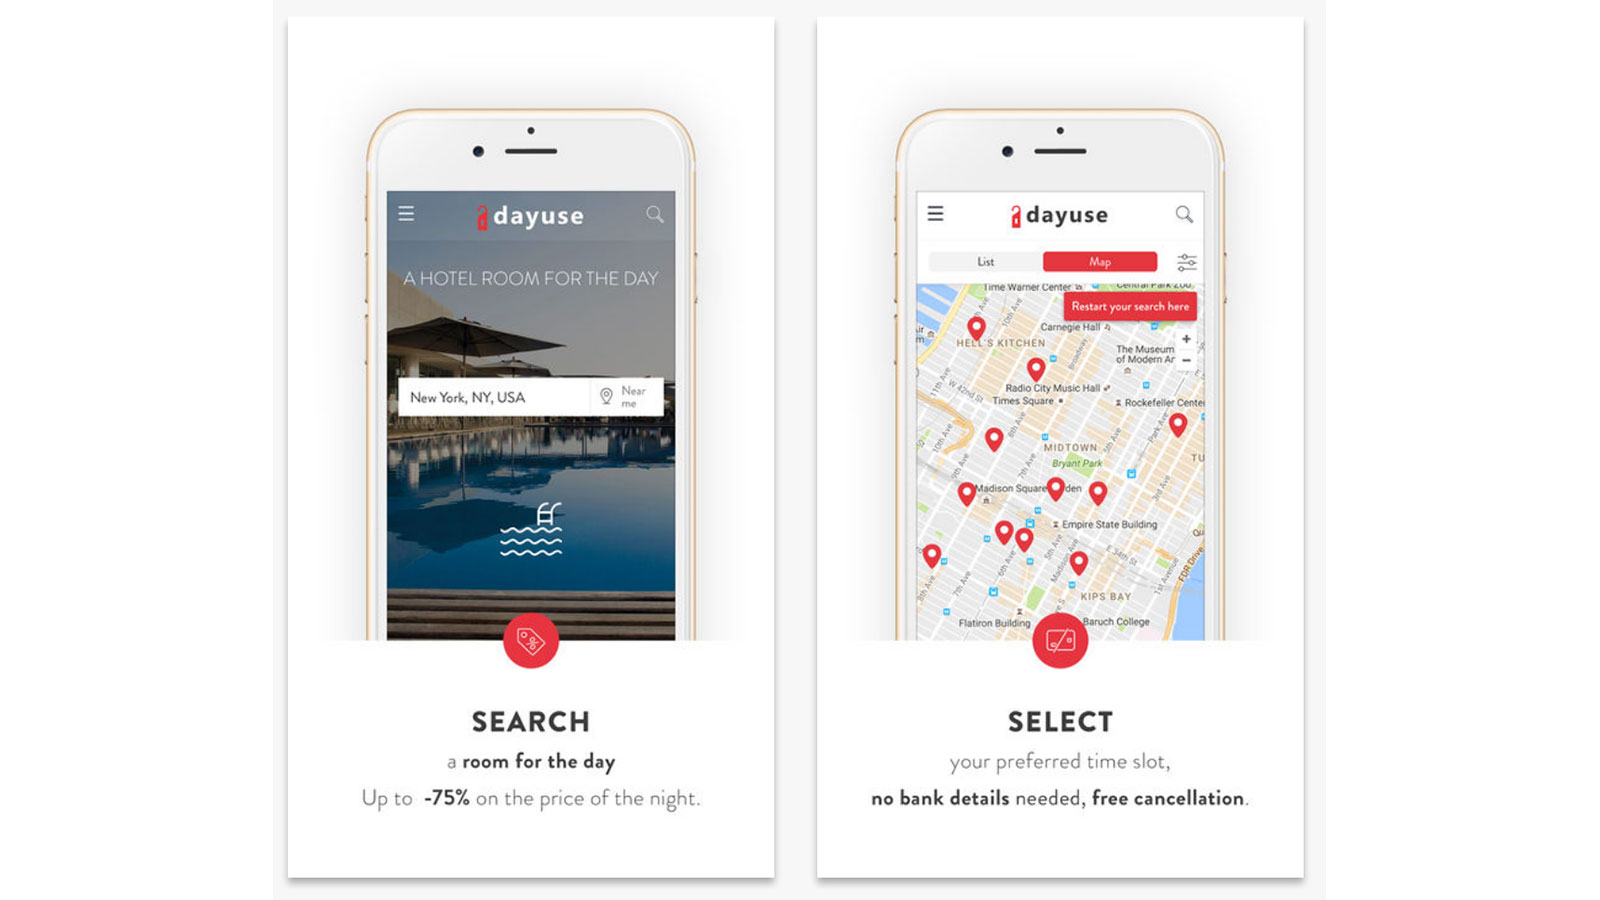 15 Best Travel Apps To Download Before Your Next Trip | CNN Travel